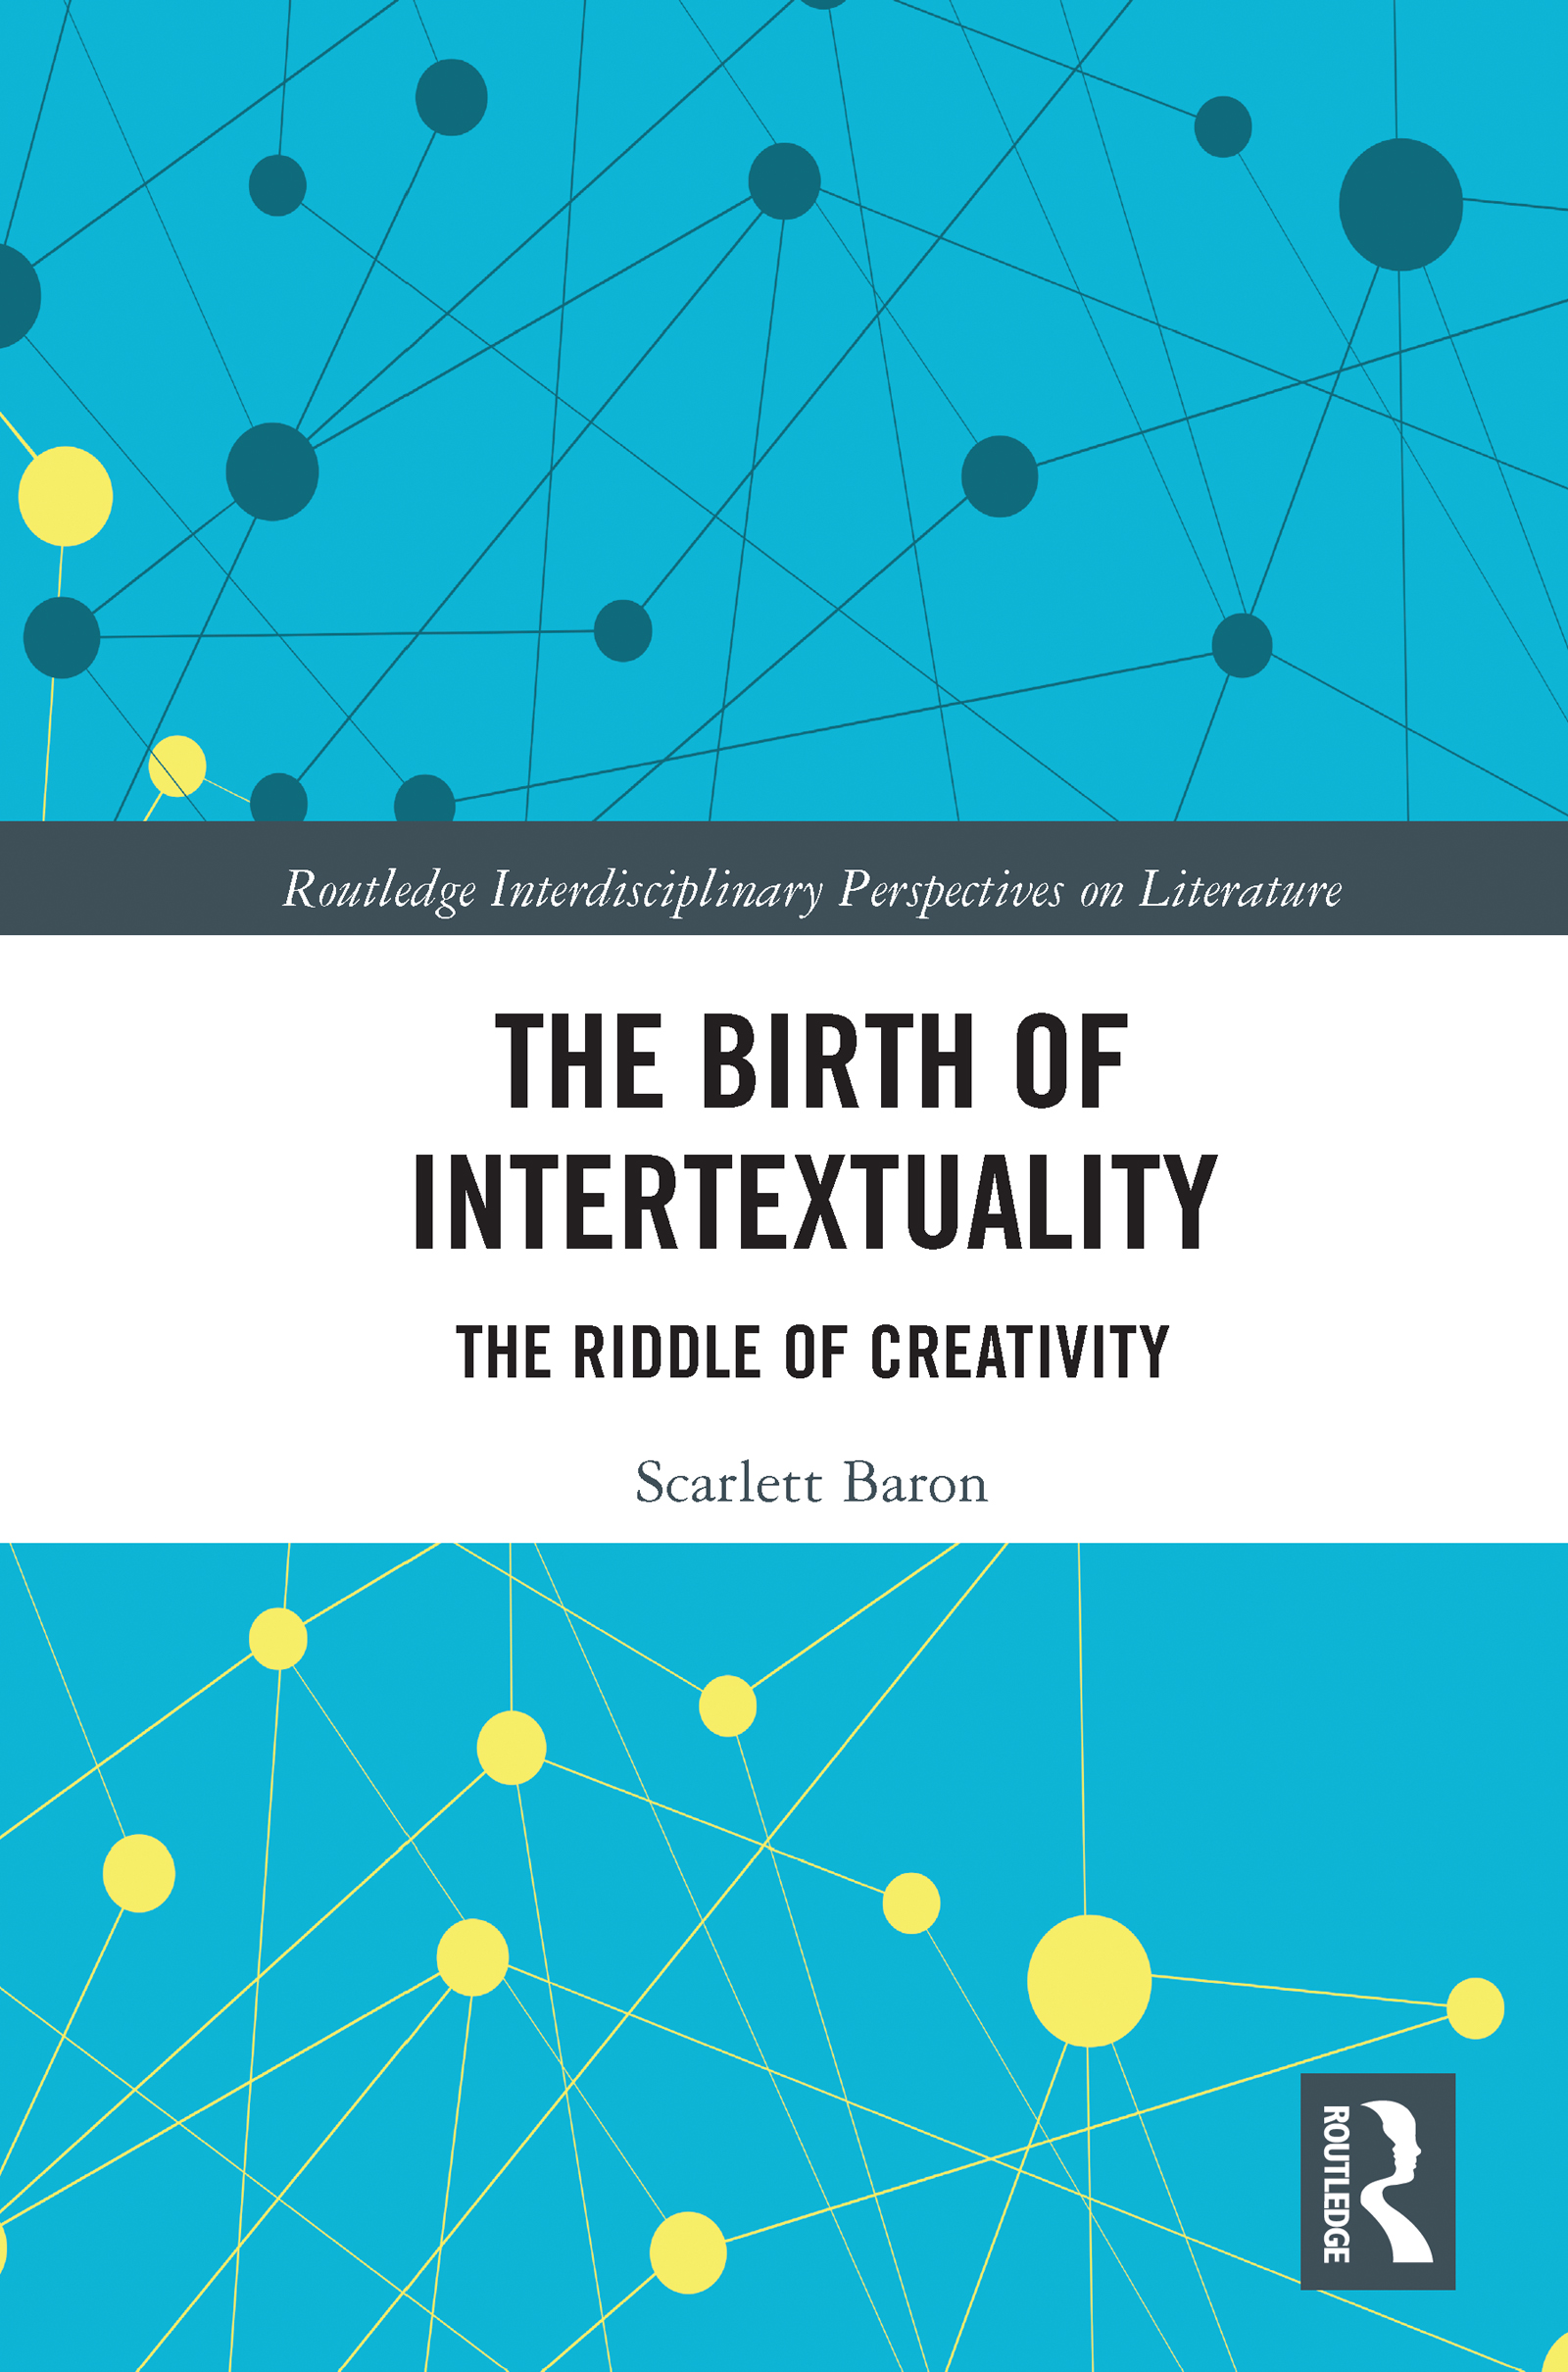 The Birth of Intertextuality